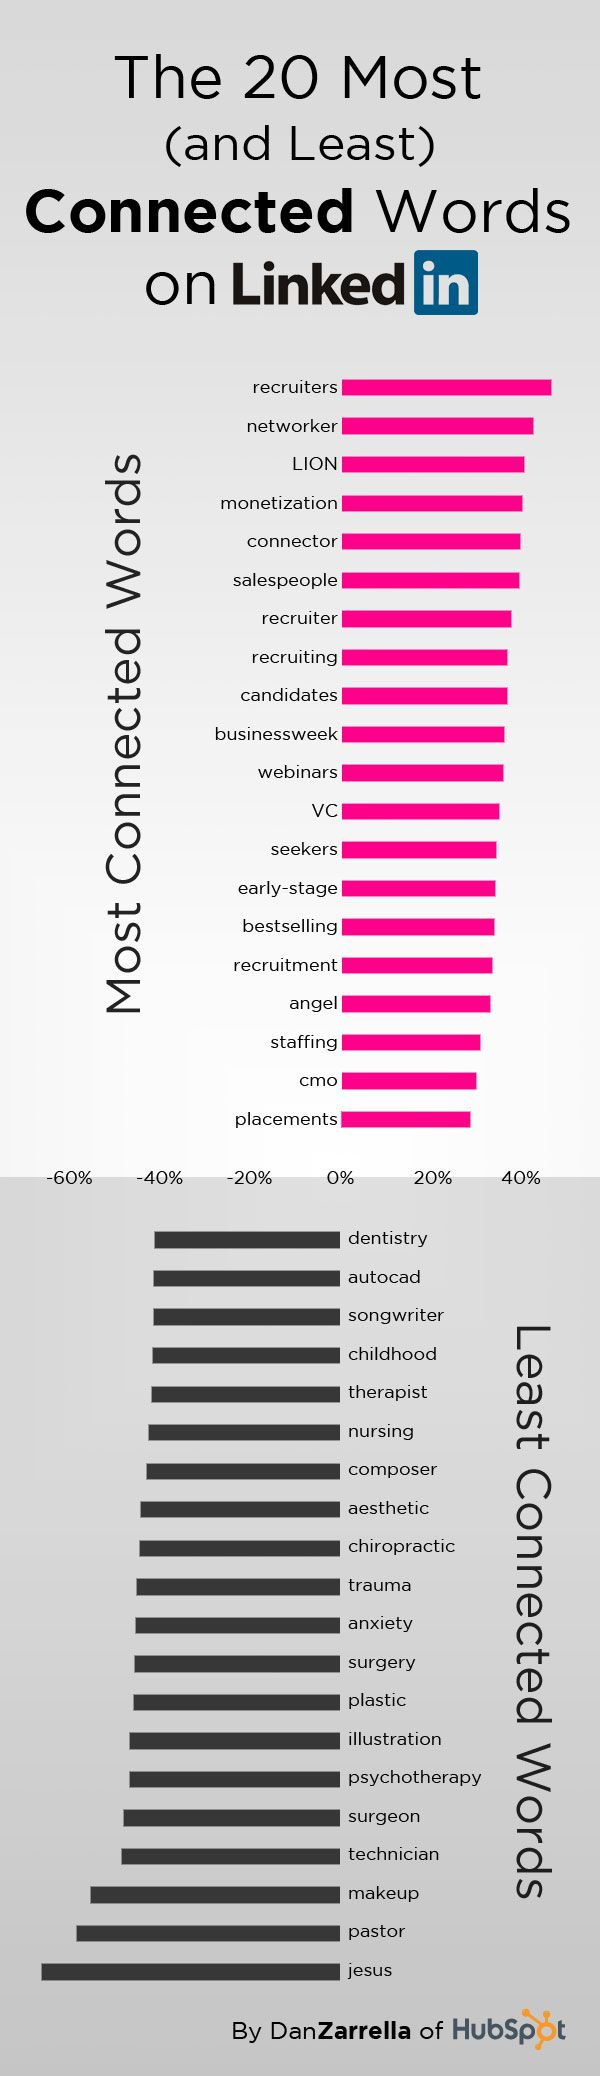 The 20 Most (and Least) Connected Words on LinkedIn #infographic